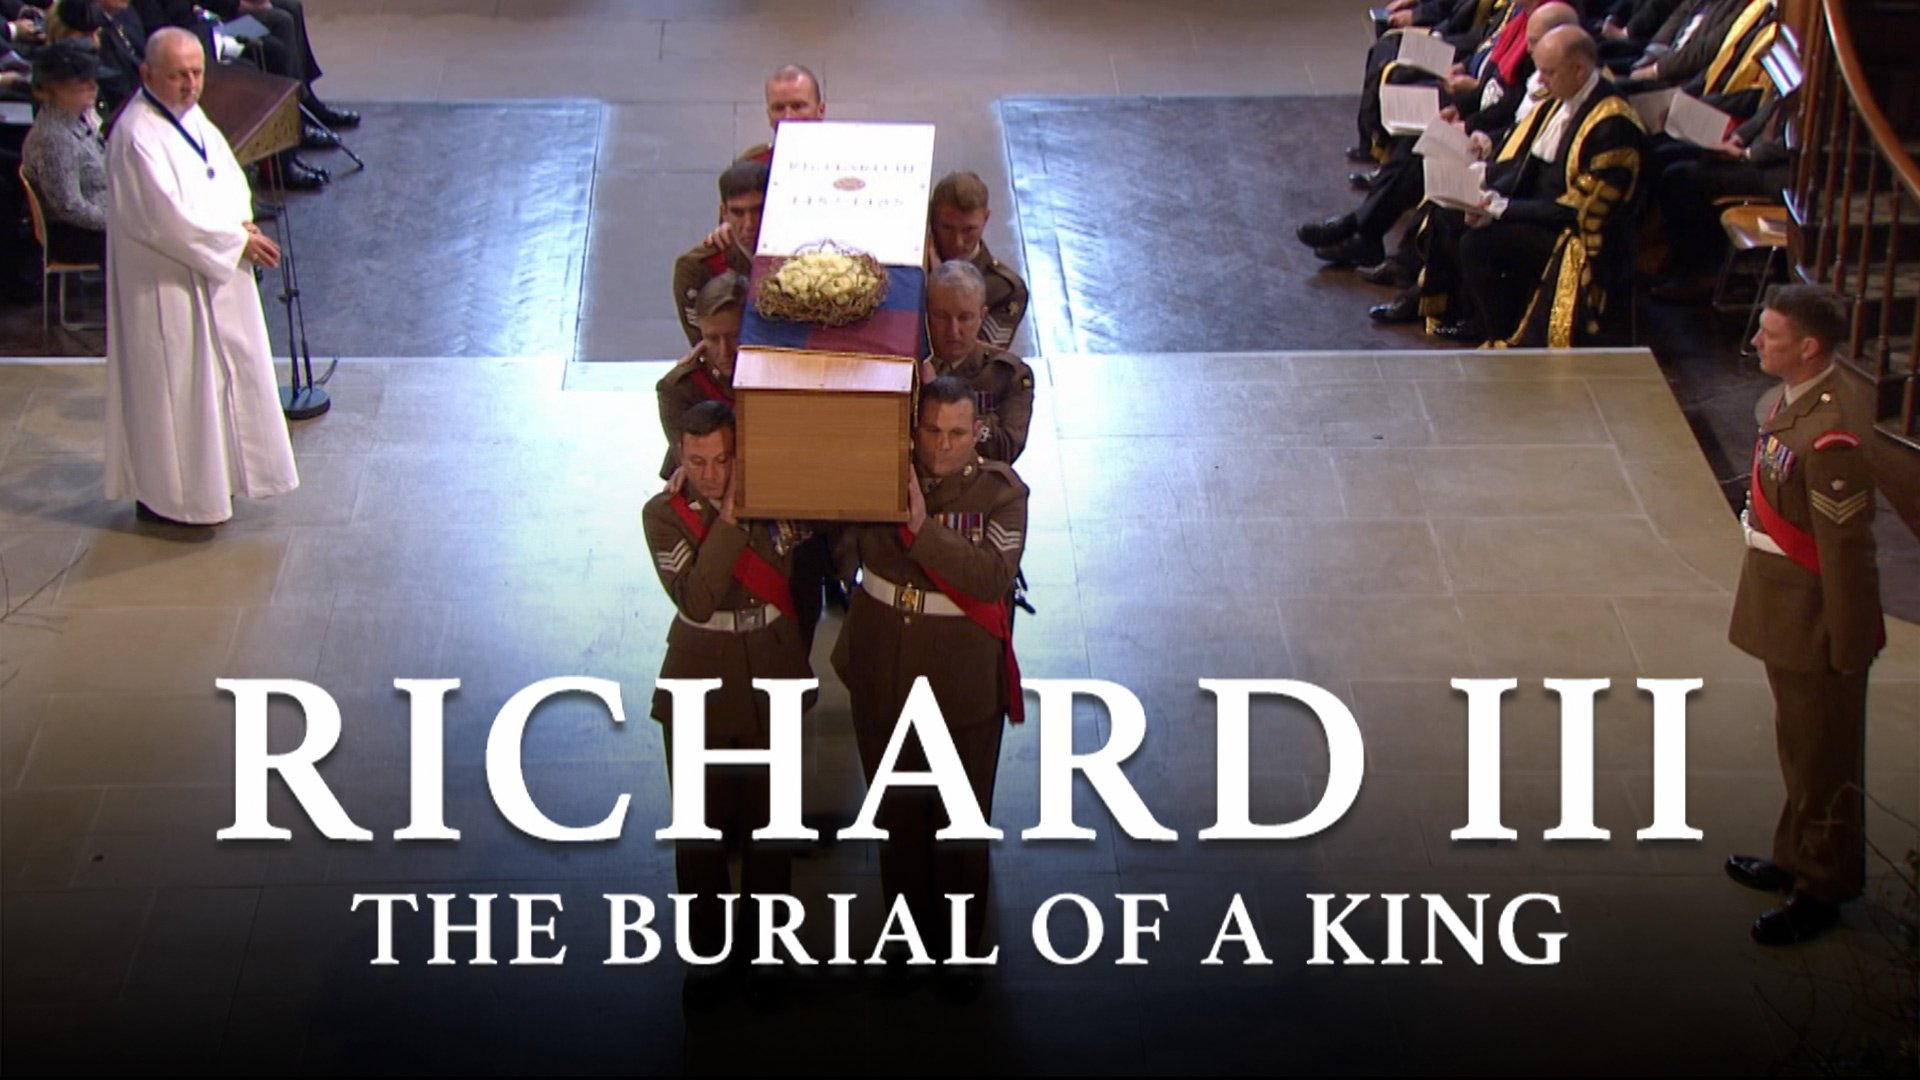 Richard III: The Burial of a King on BritBox UK